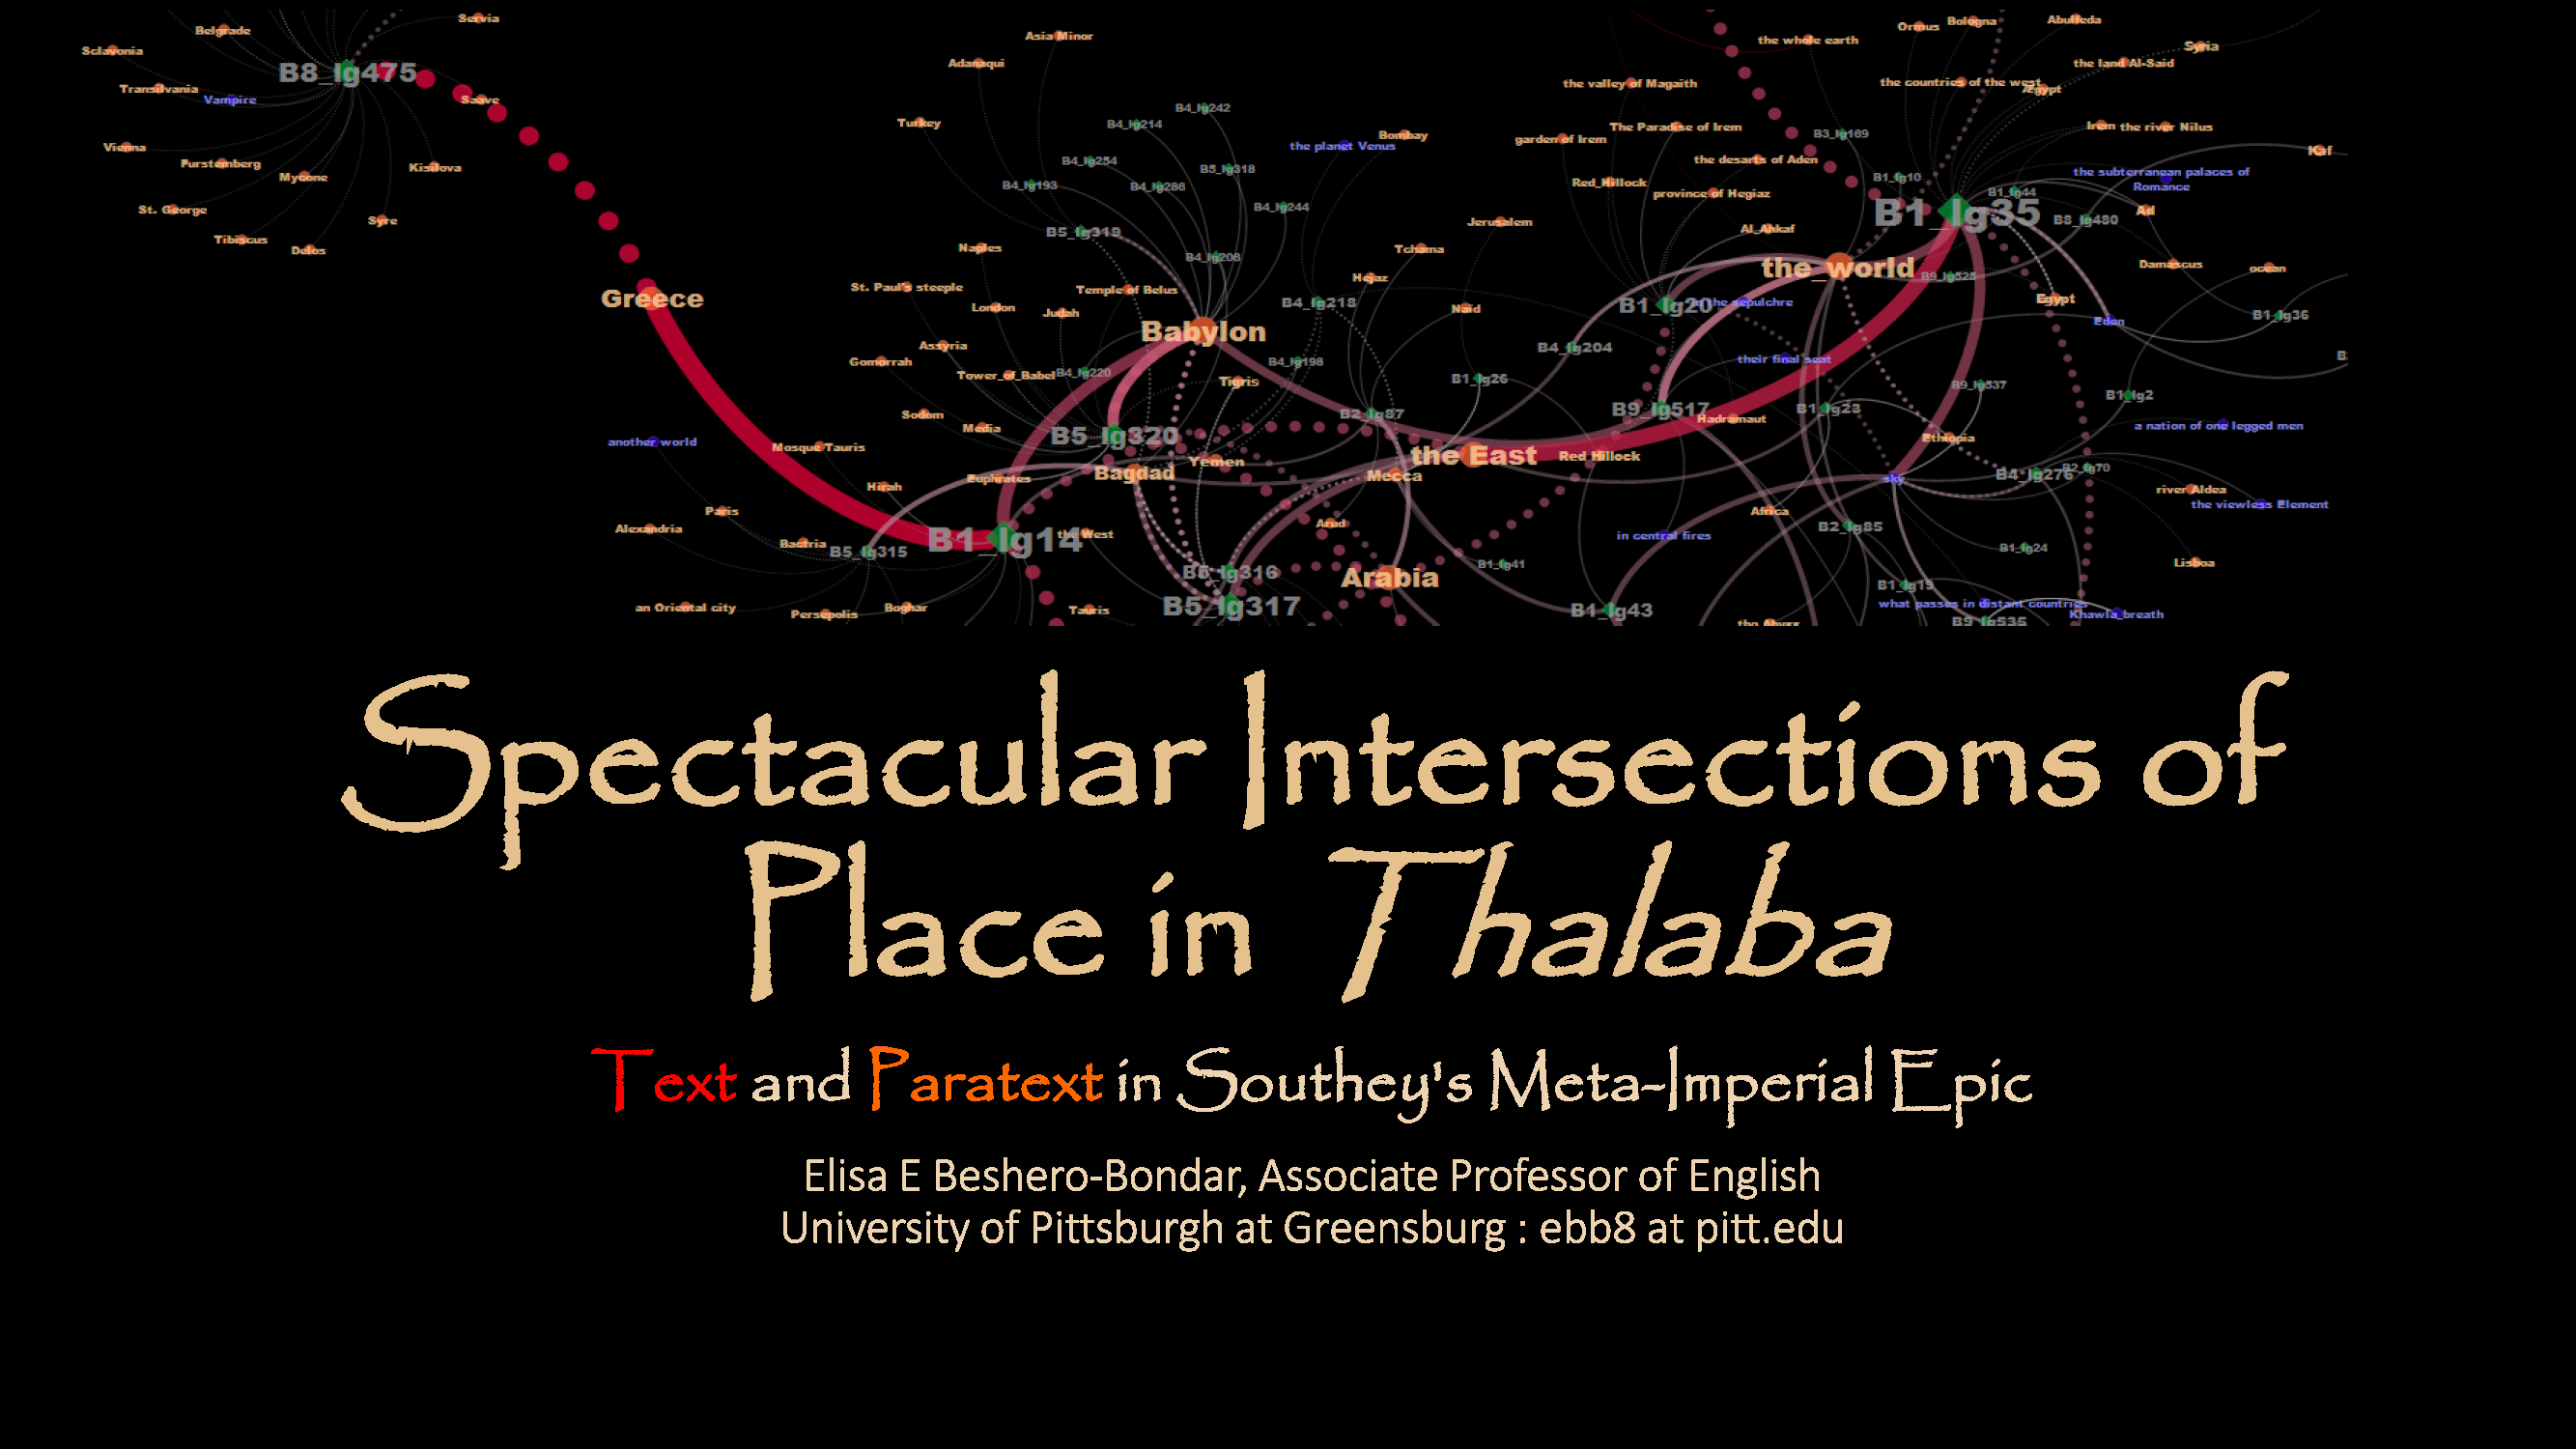 Spectacular Intersections of Place in Southey's Thalaba the